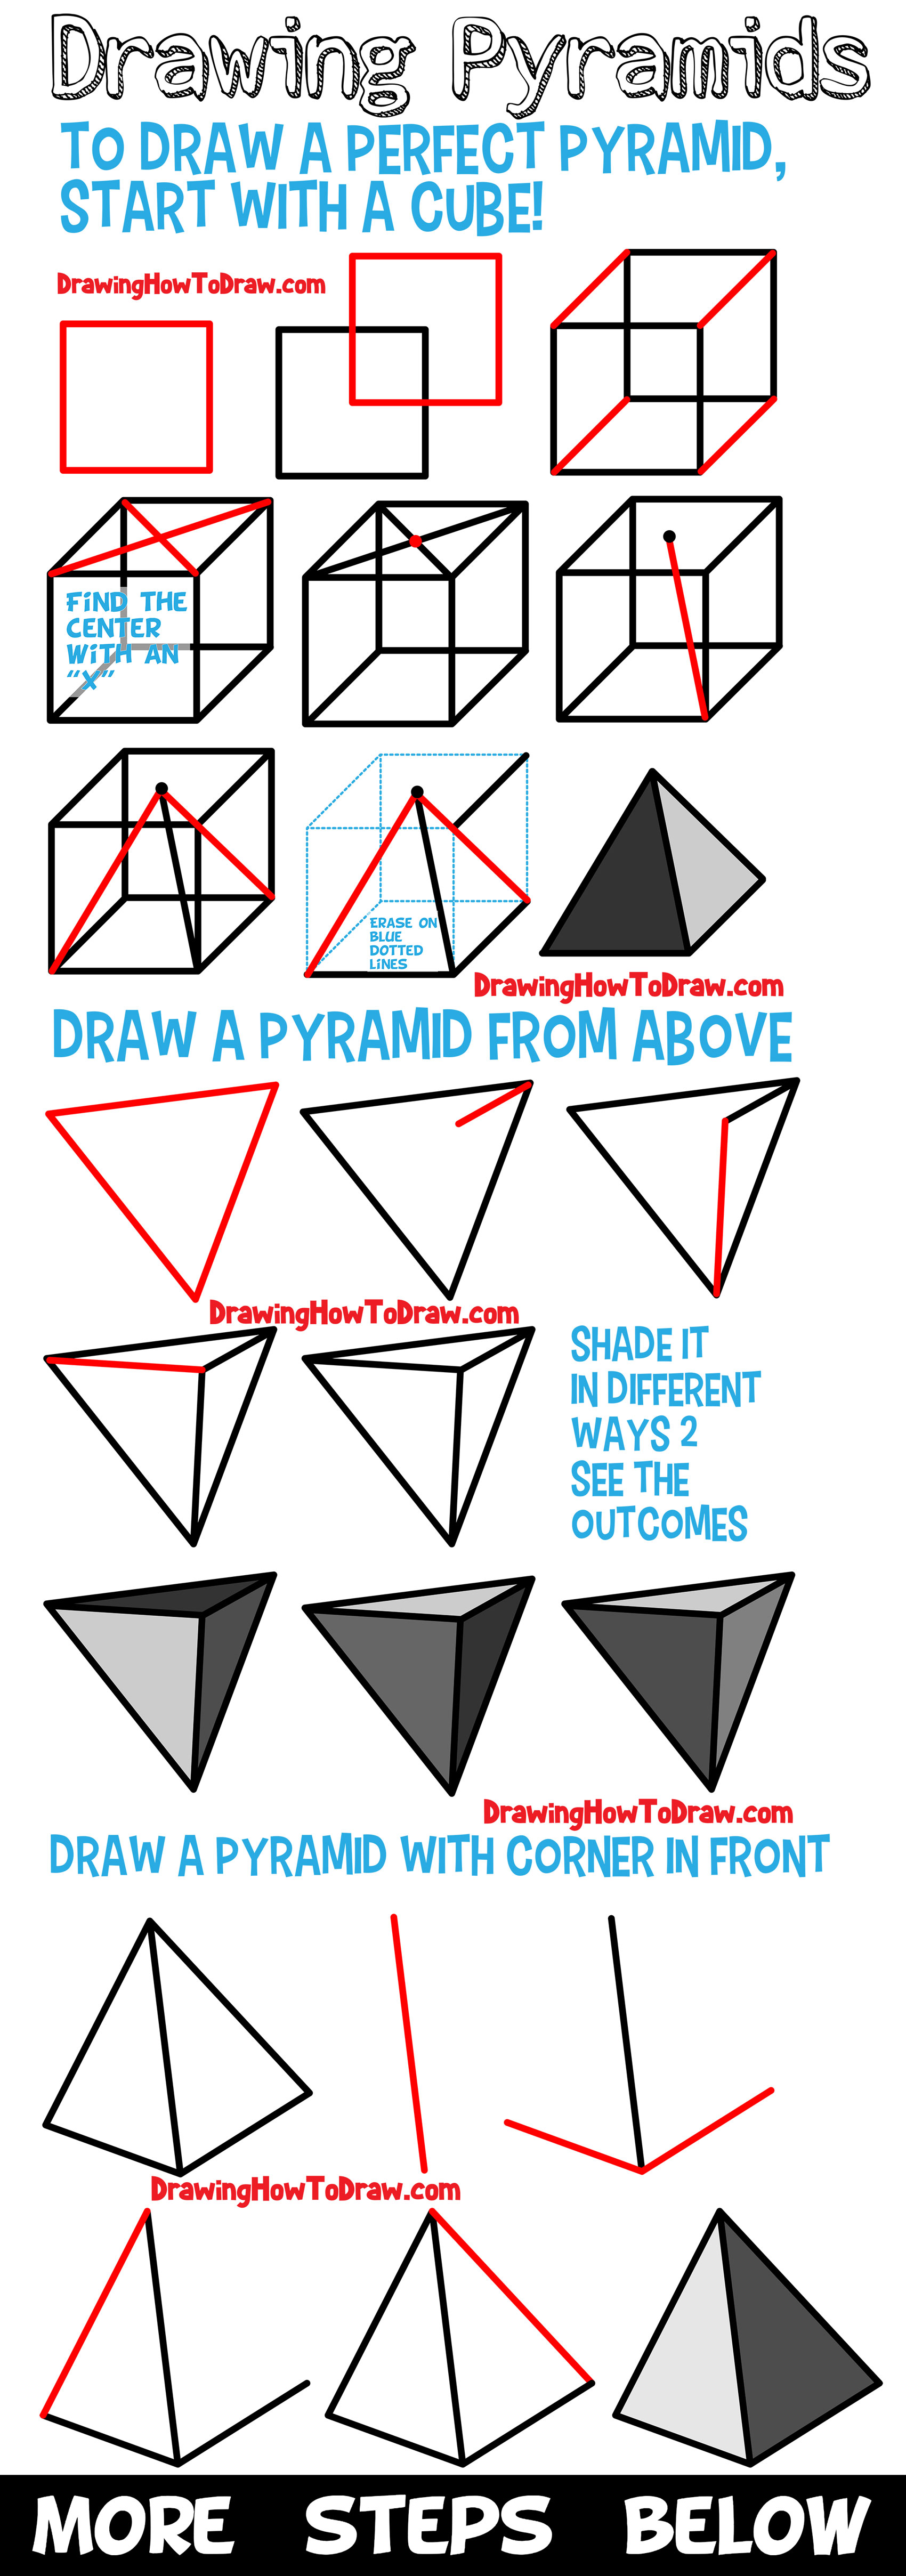 Learn How to Draw Pyramids : Guide to Drawing Pyramids from Different Angles for Beginners